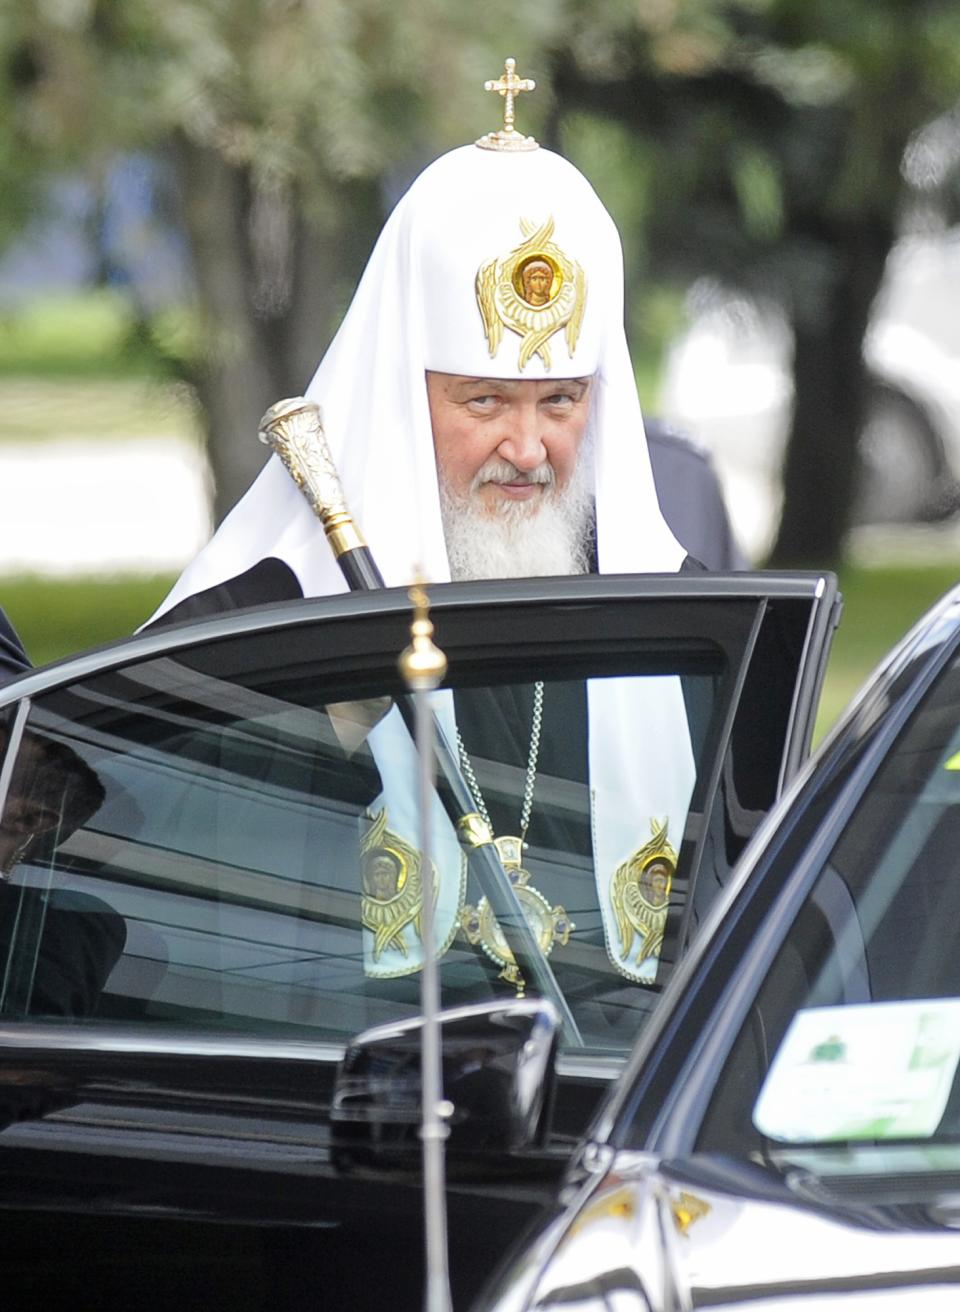 Patriarch Kirill , leader of the Russian Orthodox Church, looks at journlists as he enters his car after arrival at the Military Airport in Warsaw, Poland, Thursday, Aug. 16, 2012. Patriarch Kirill  is in Poland on a four day official visit. (AP Photo/Alik Keplicz)